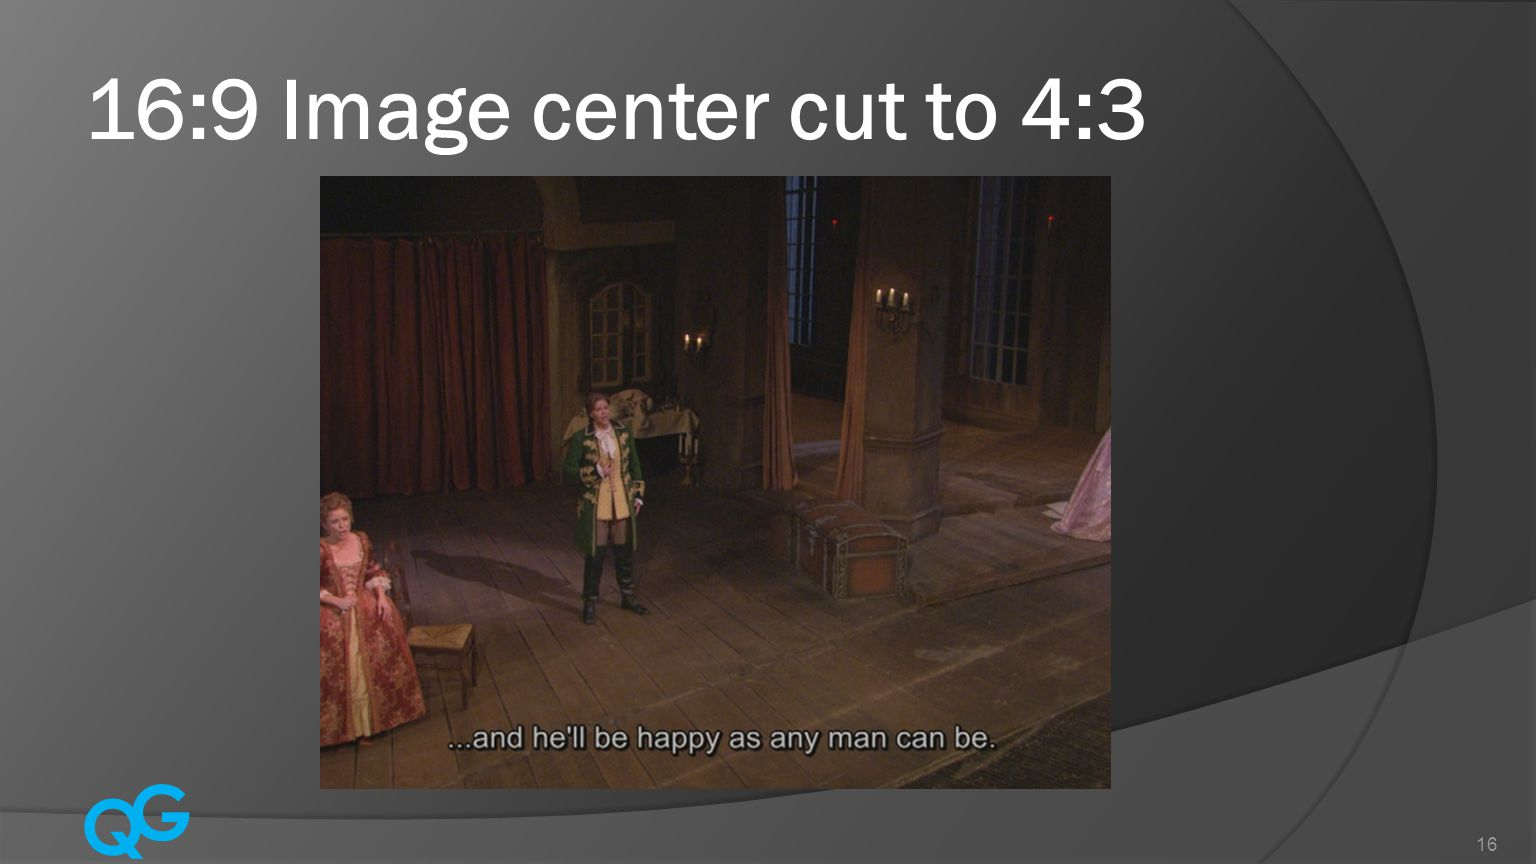 16:9 Image center cut to 4:3